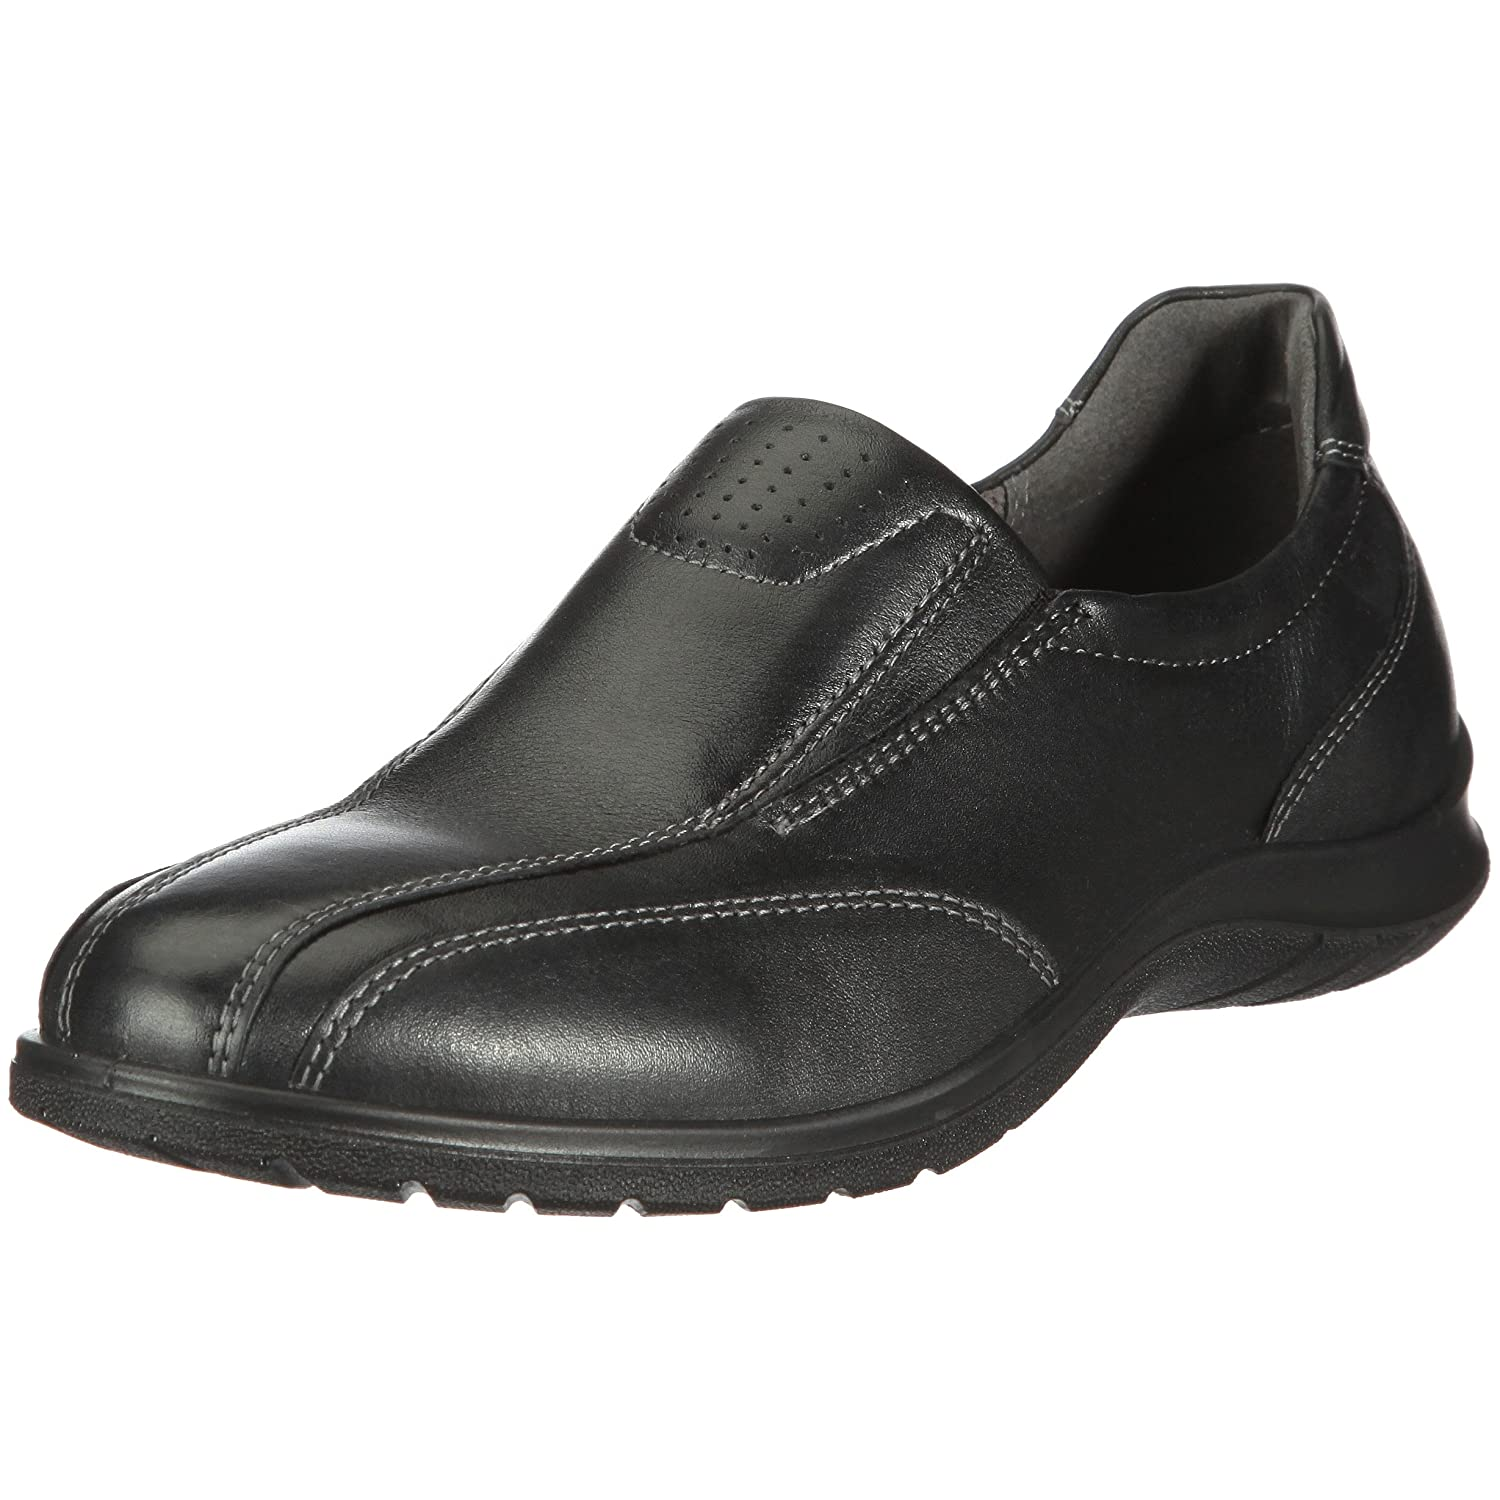 Ecco Women's Sky Slip on Black Leather Shoes